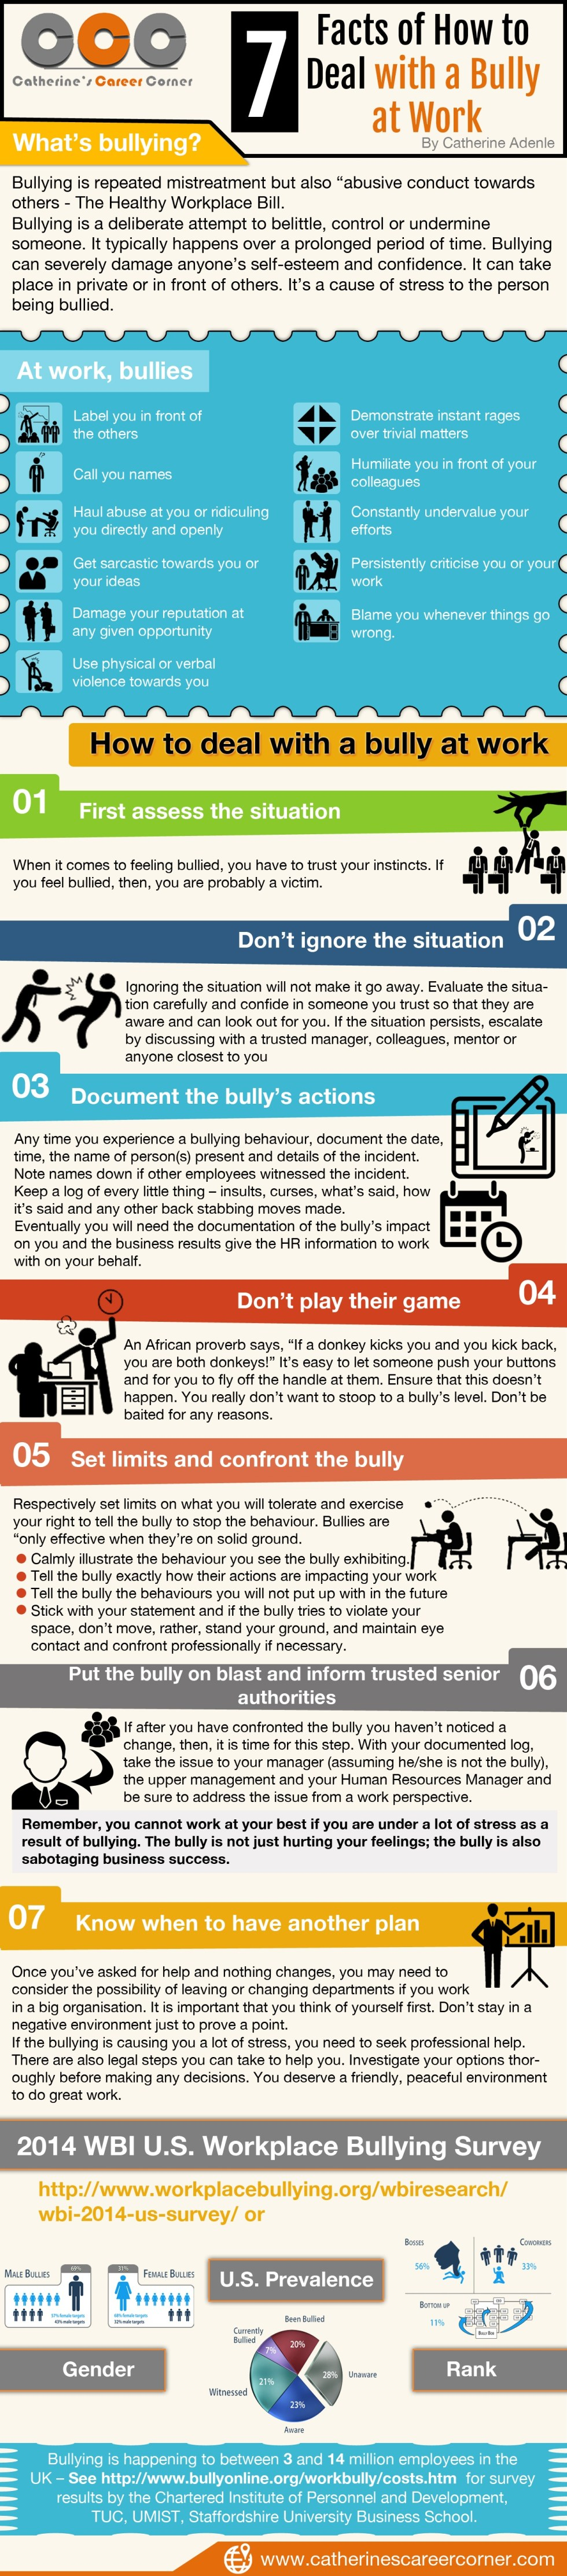 How to Deal with a Bully at Work - 7 Tips